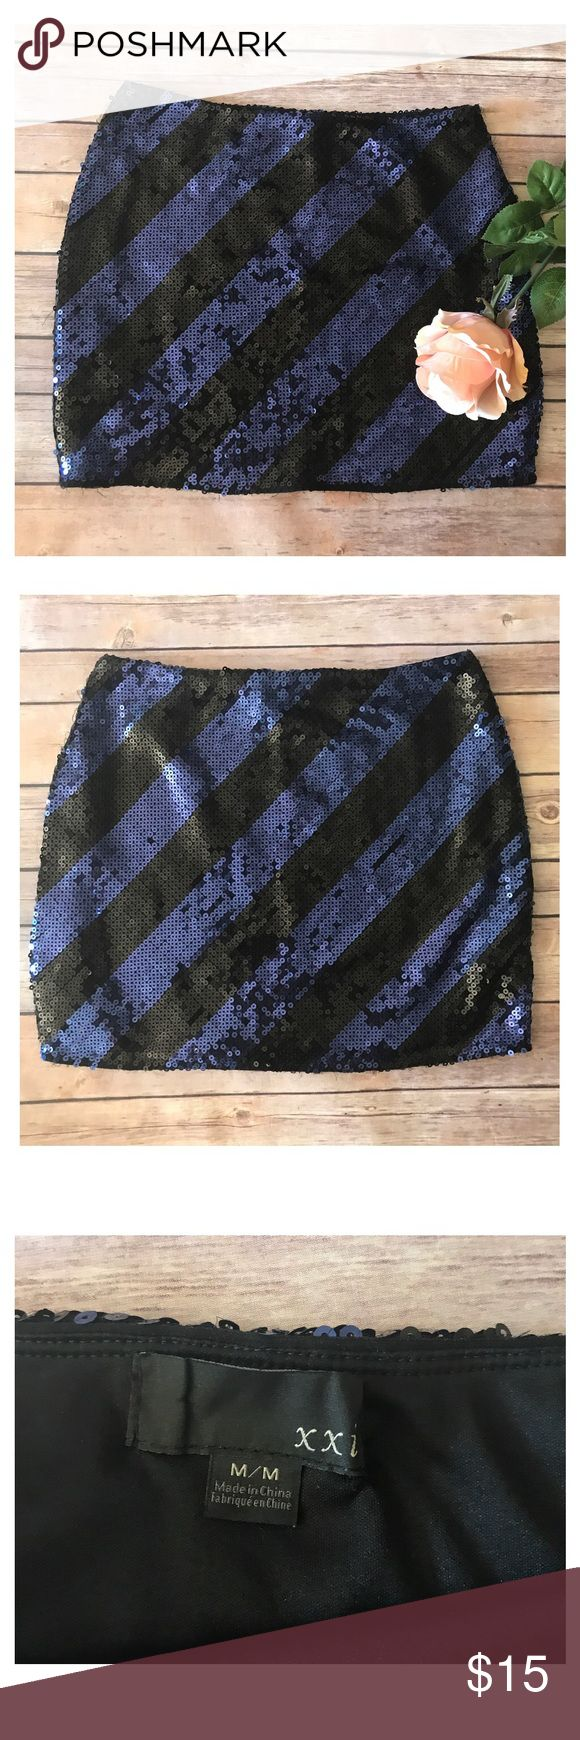 XXI Blue & Blue Striped Sequin Skirt Blue and black Sequin skirt! It's a mini skirt but has a lot of stretch to it. Worn once with a black thin sweater and looked great in the fall! Let me know if you have any questions prior to purchase! 🤗💕 XXI Skirts Mini